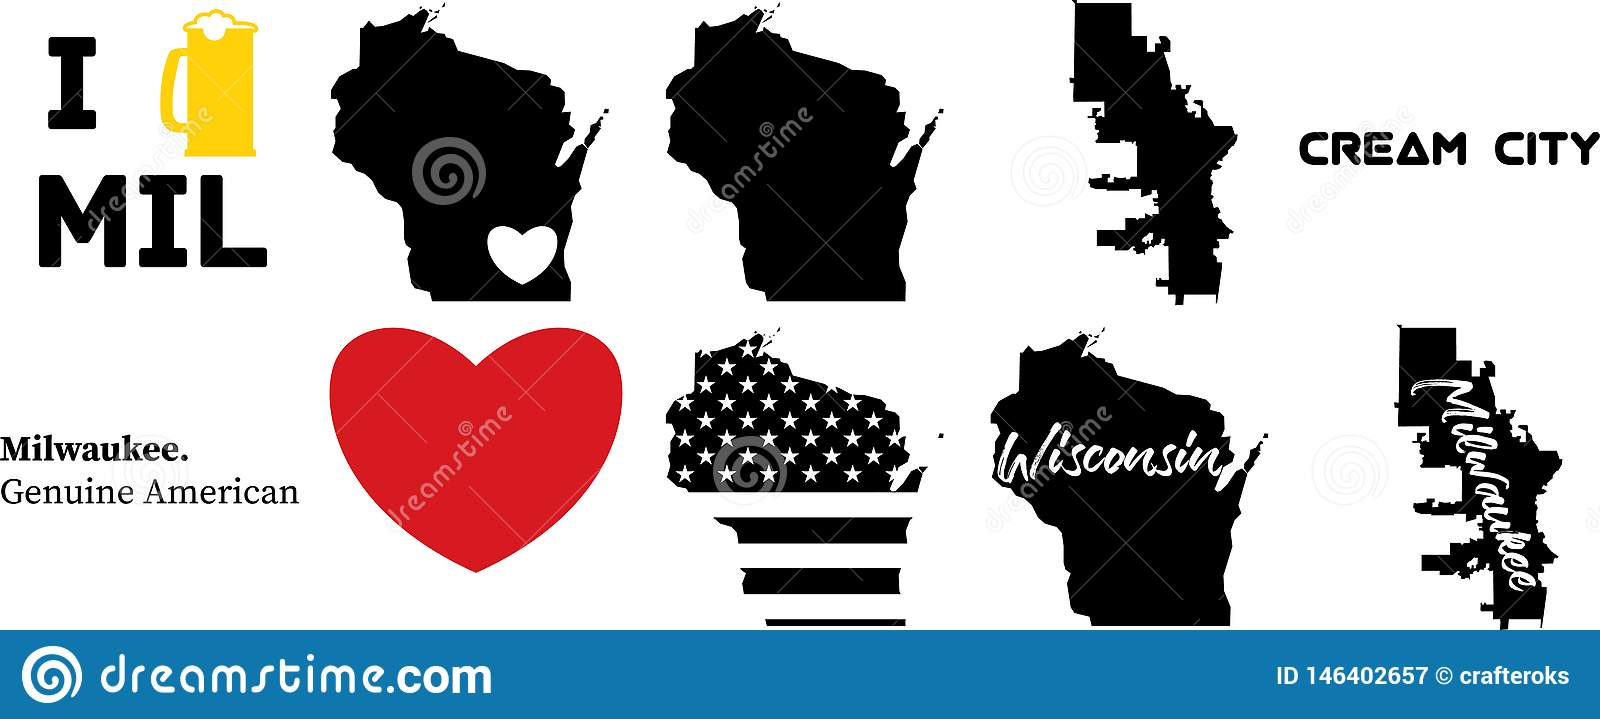 Milwaukeee Wisconsin US Map With Wisconsin Map Stock Vector ...